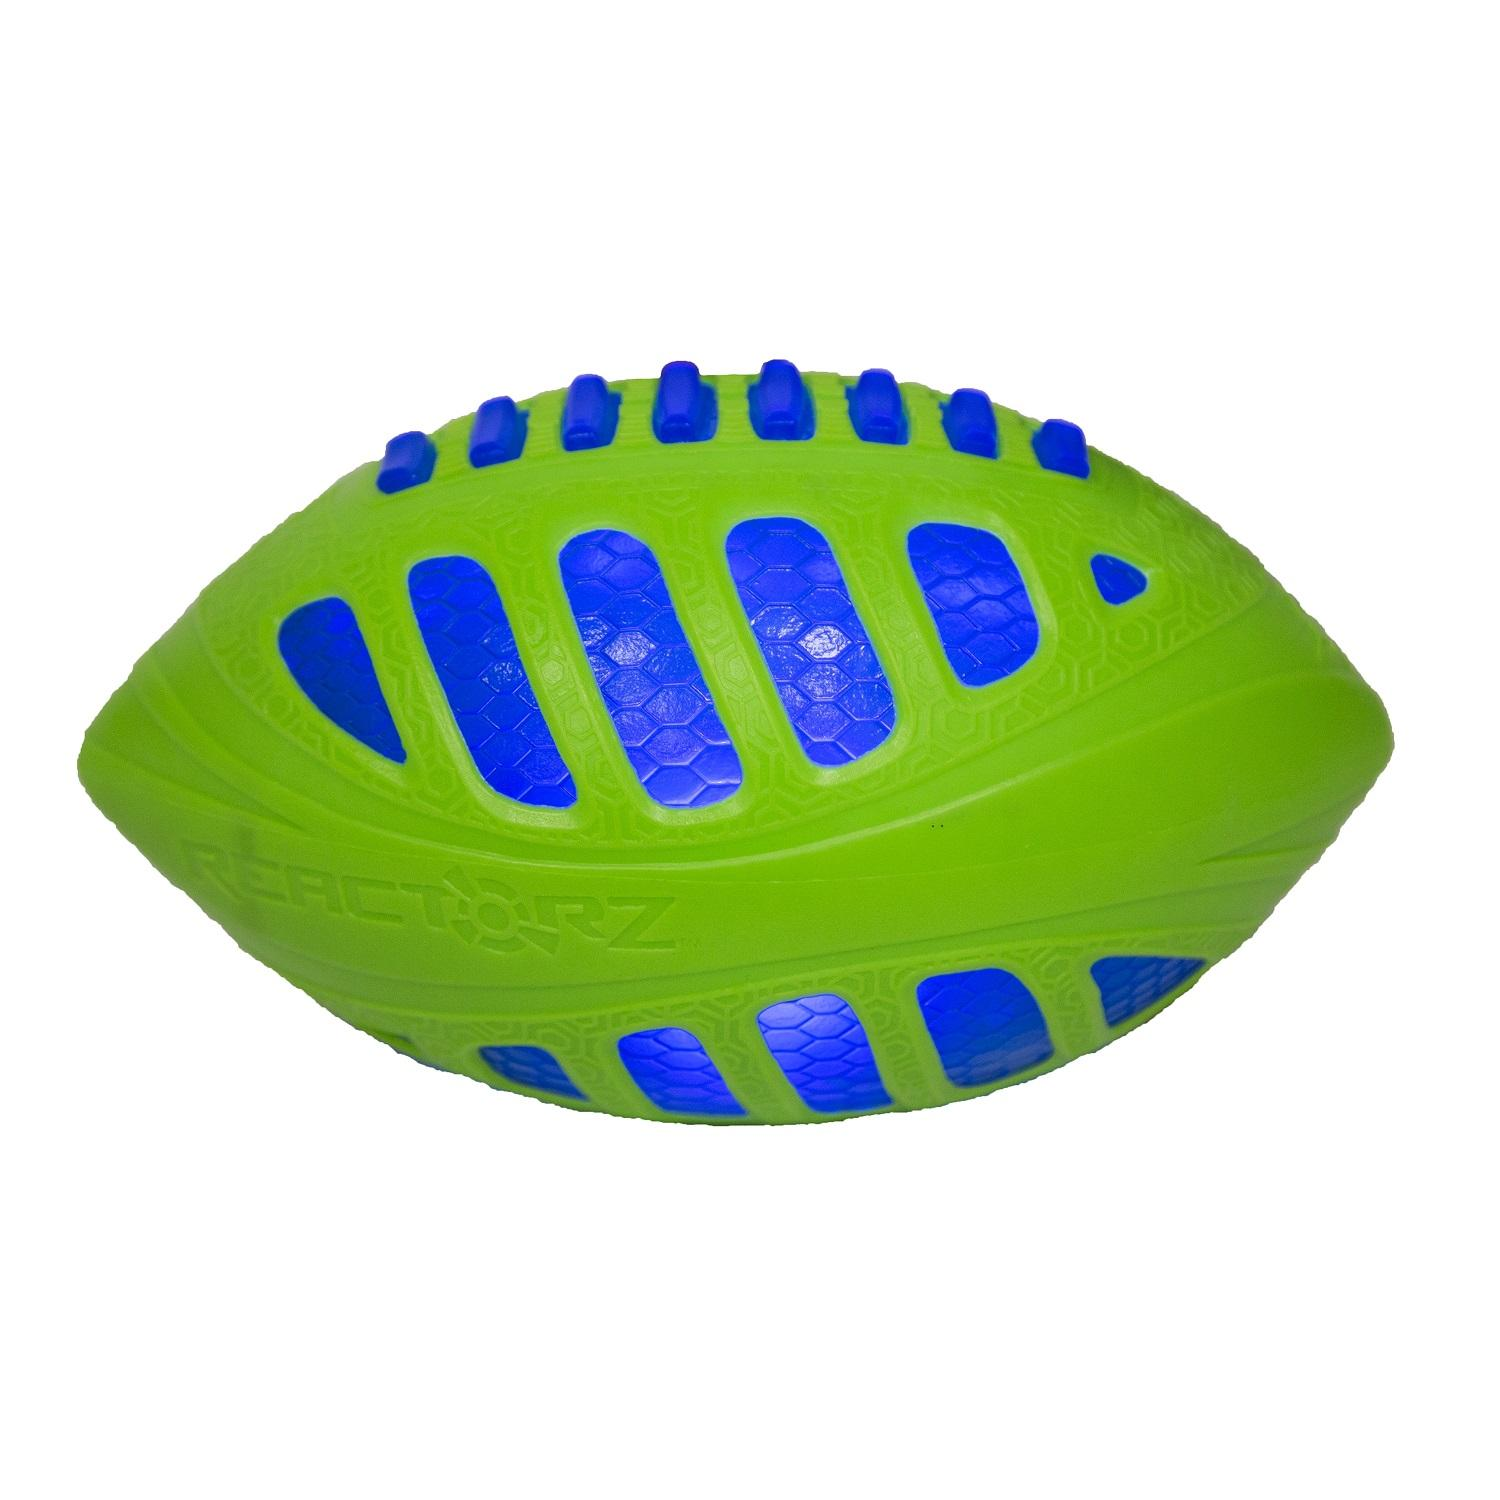 "9"" Cobalt Blue and Lime Green LED Lighted Reactorz Football Outdoor Sport Toy"